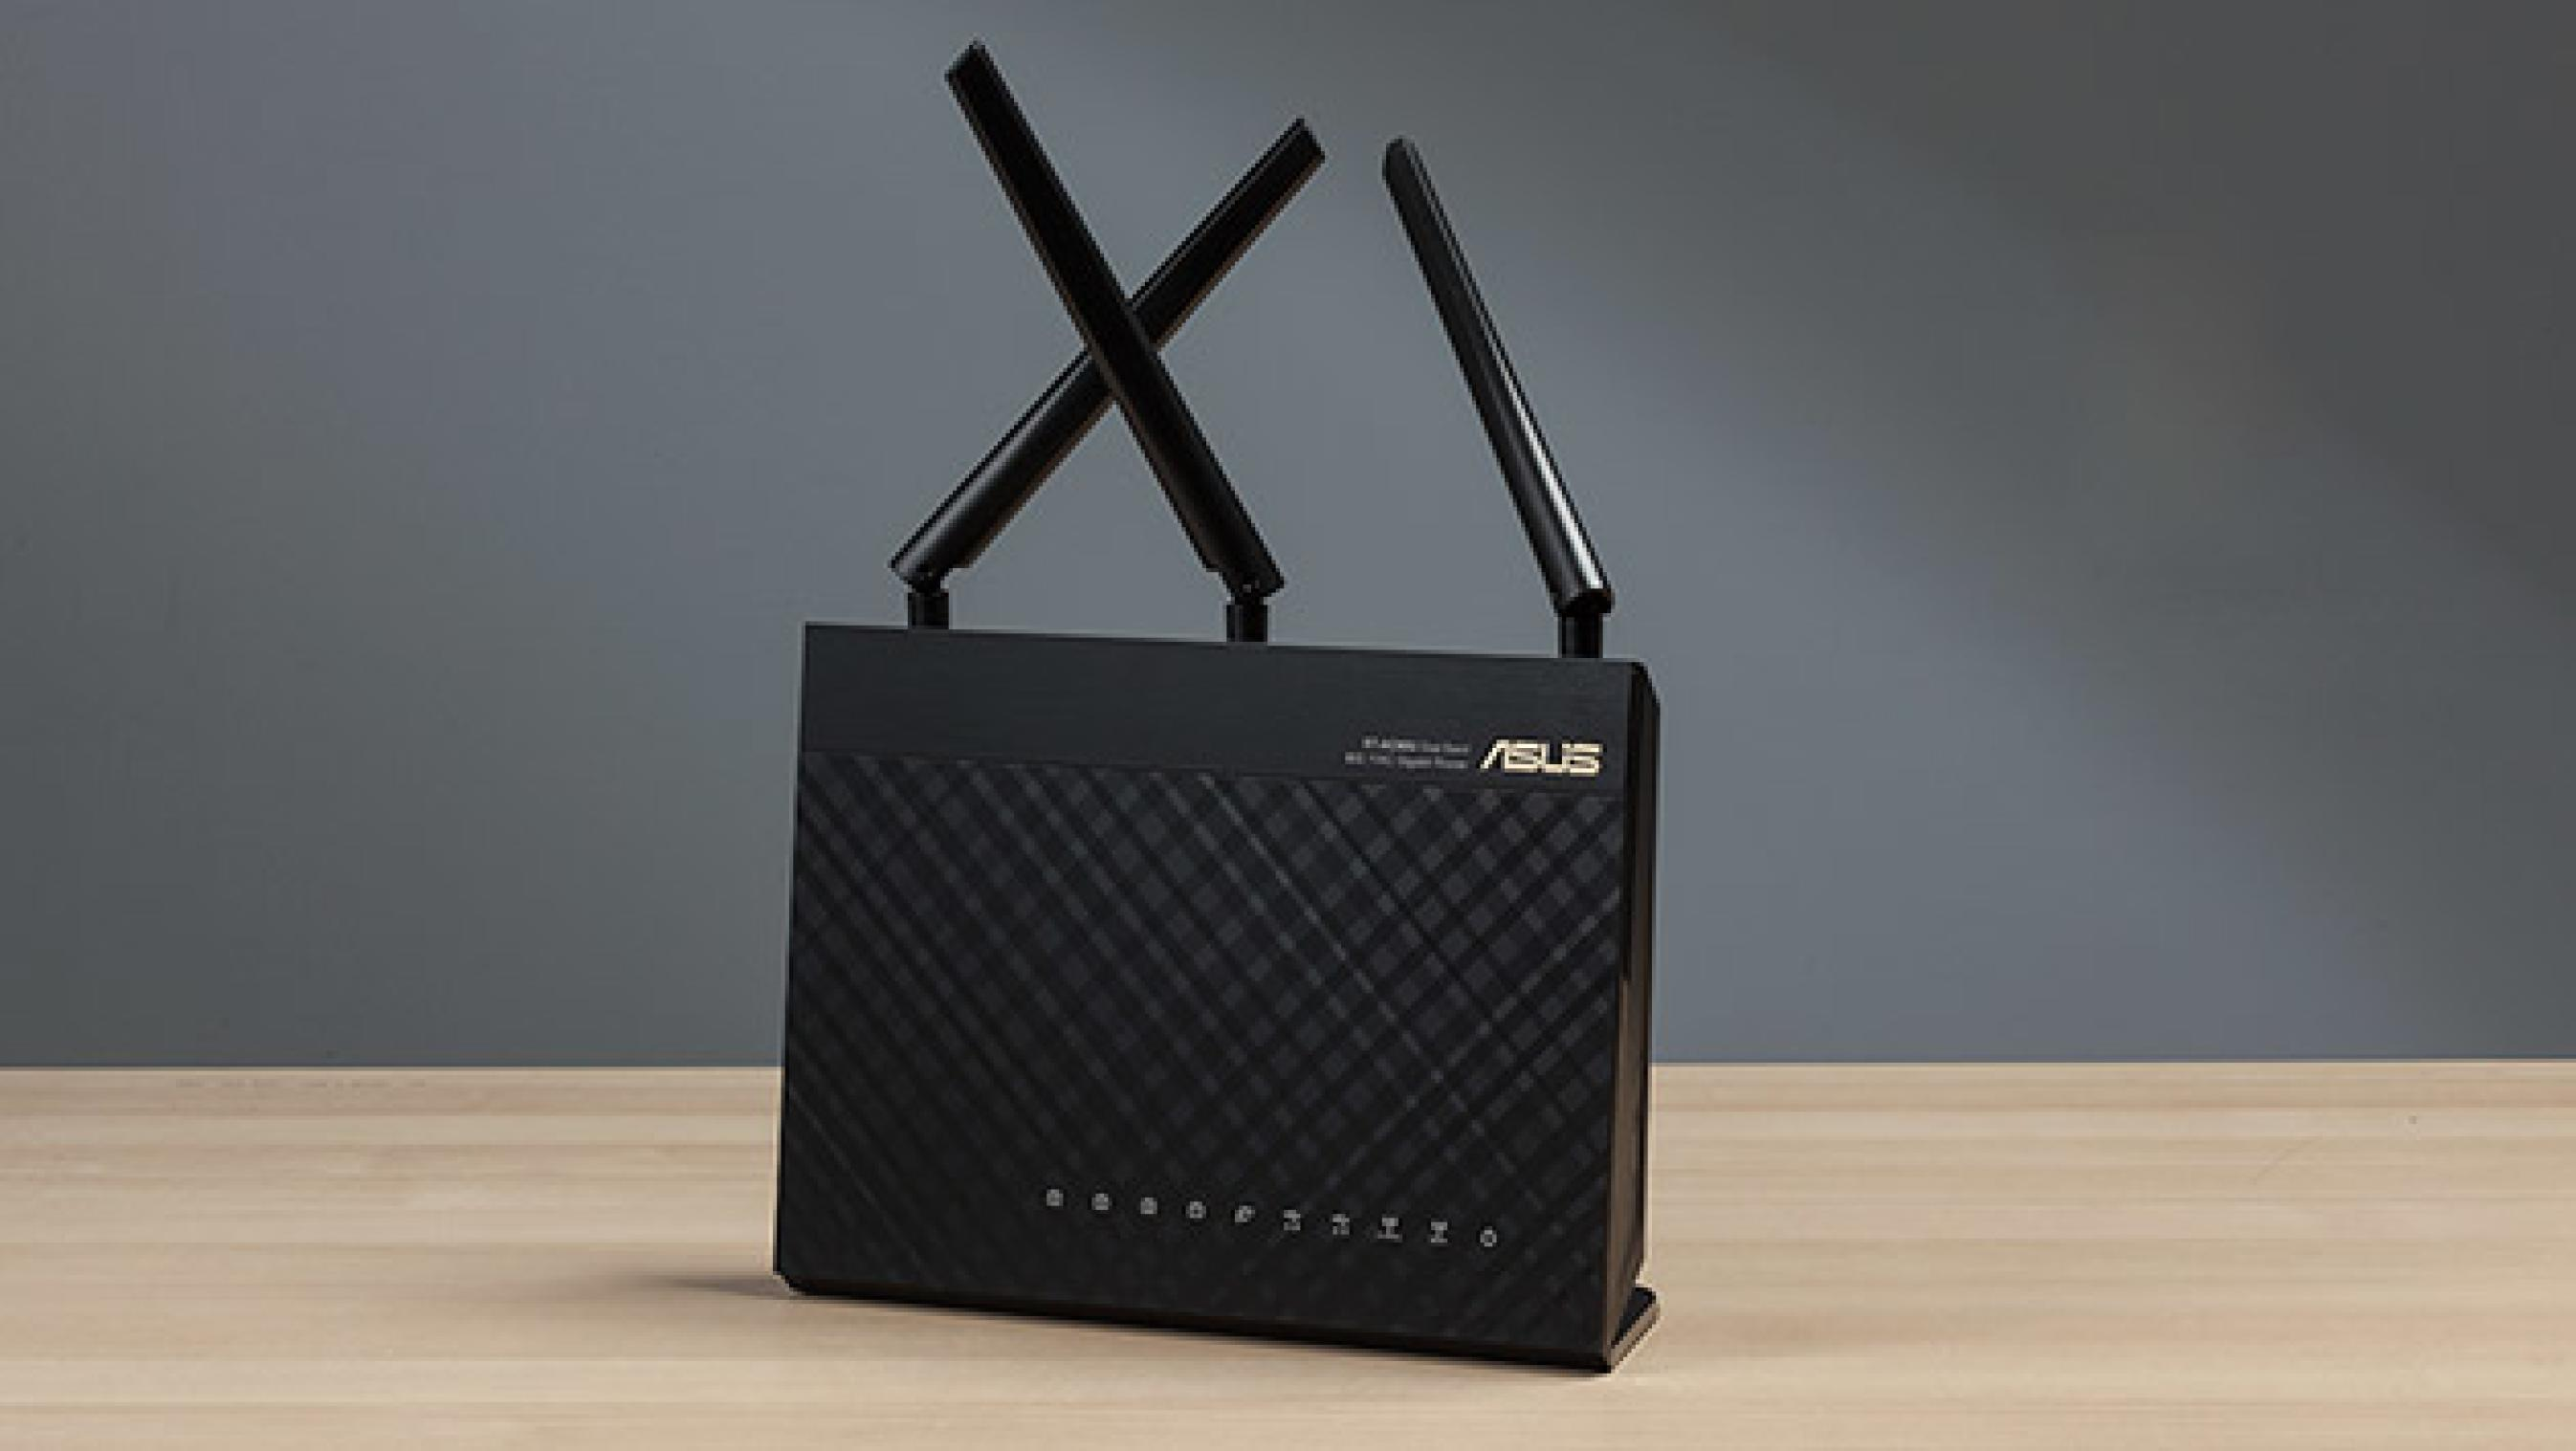 ASUS RT-AC68U Wi-Fi Router